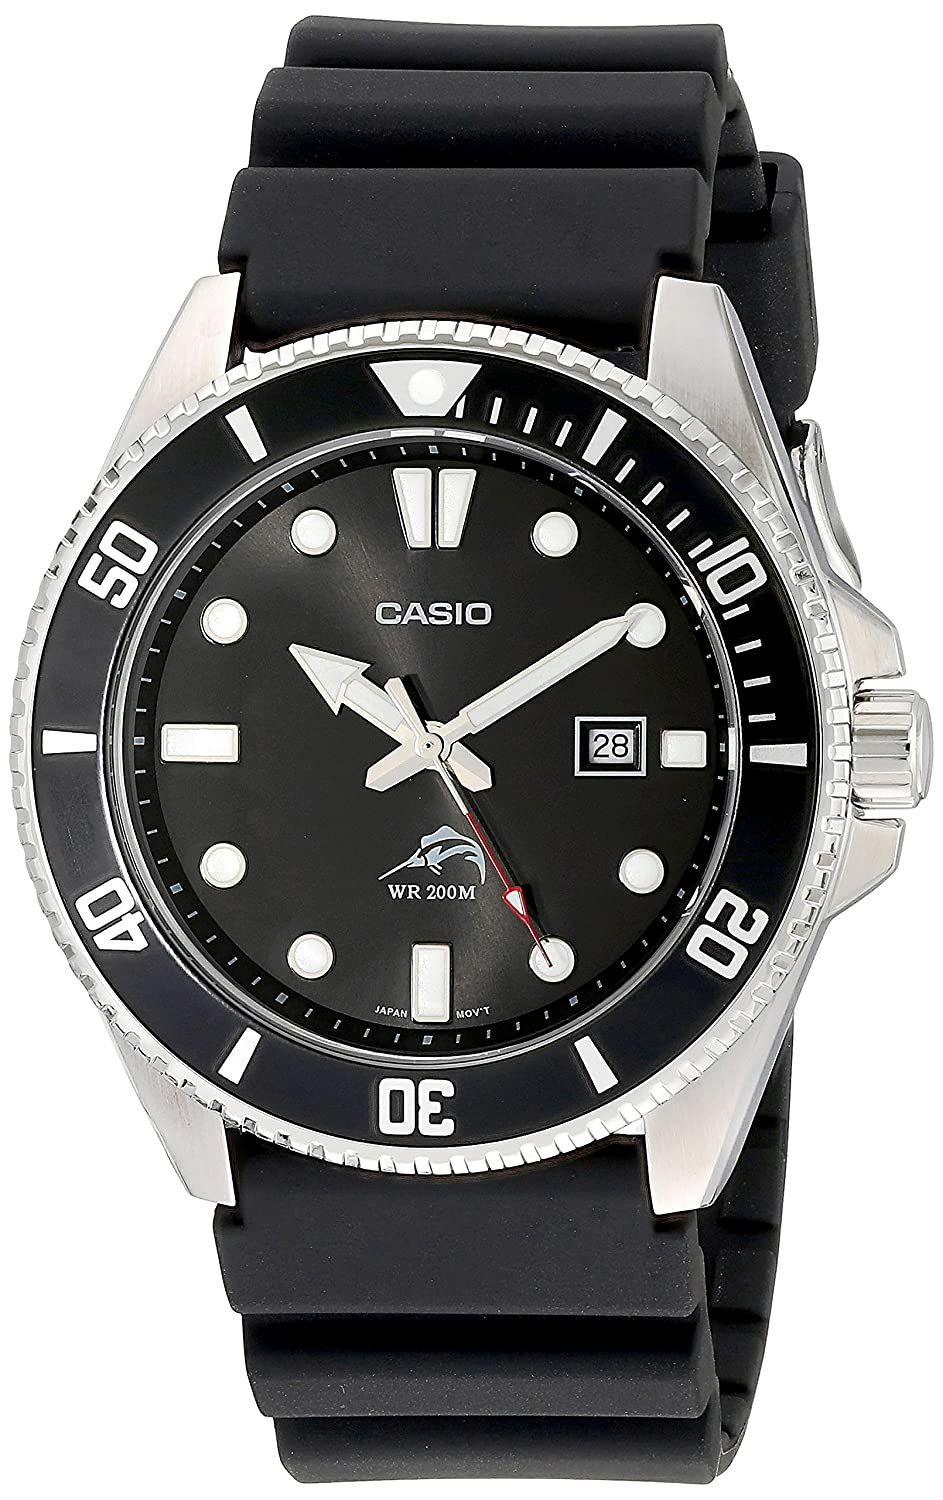 1f771cf02d3 Amazon.com  Casio Men s MDV106-1AV 200M Duro Analog Watch